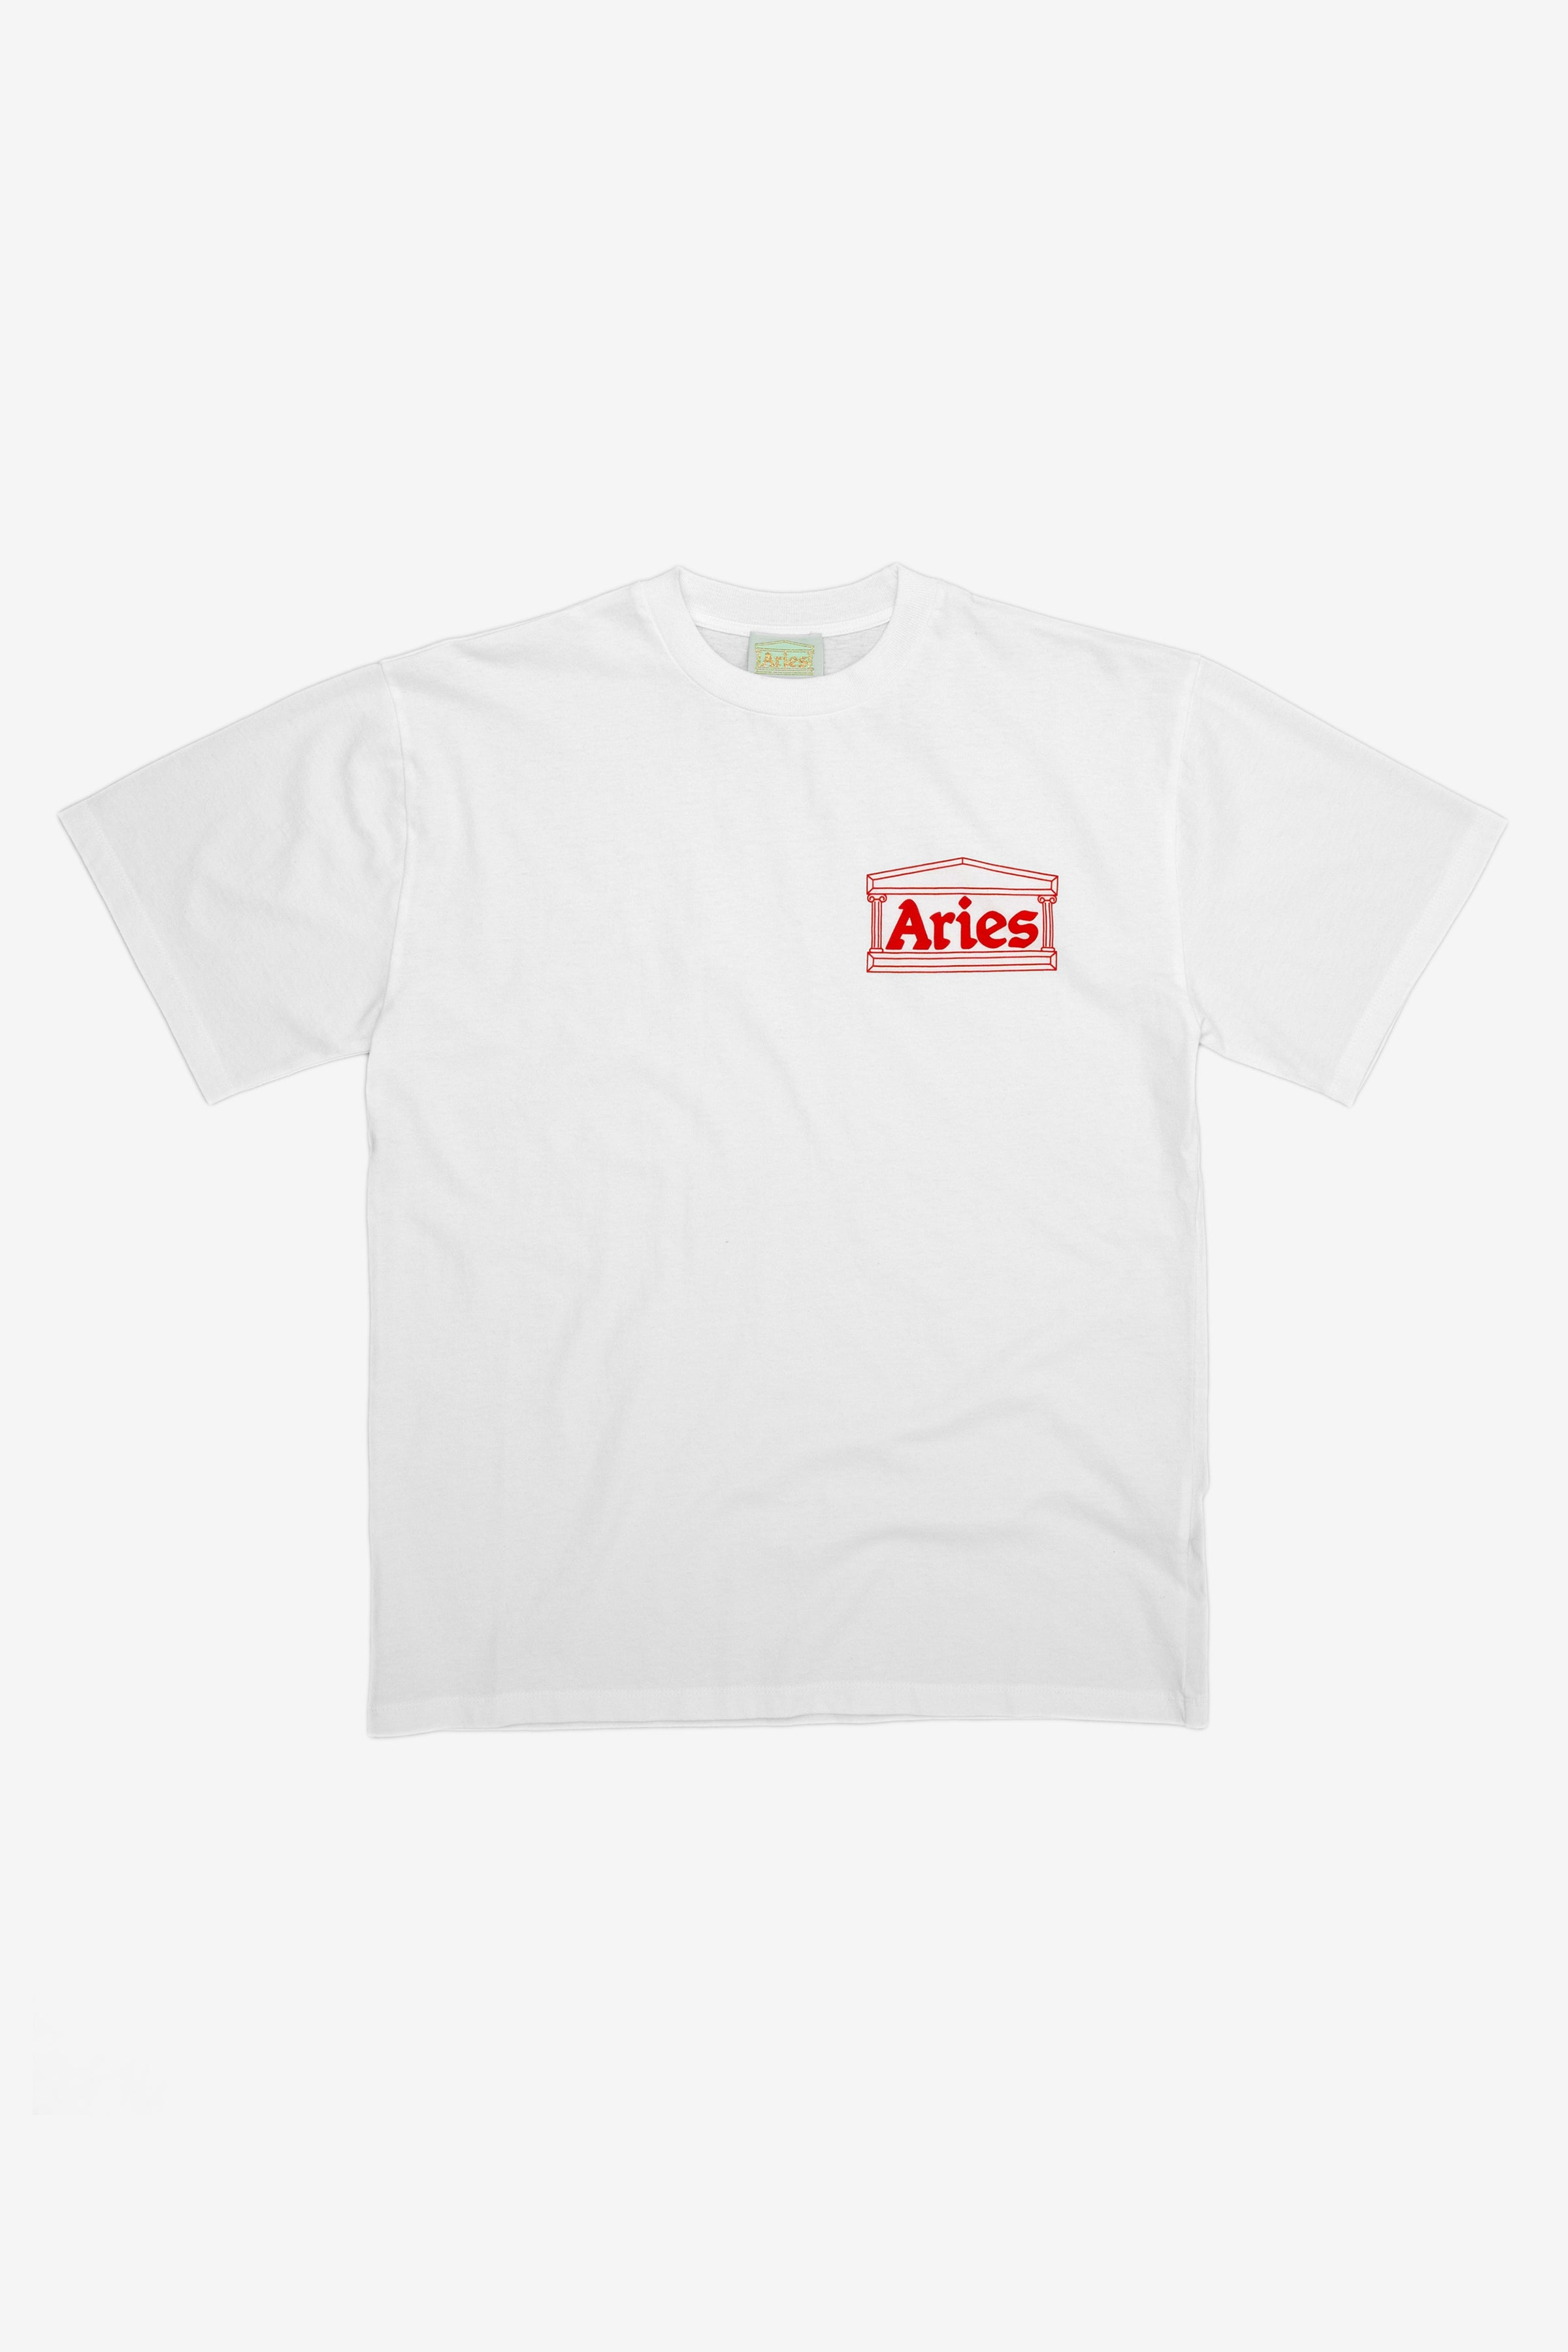 Aries Temple Logo T-Shirt White/Red